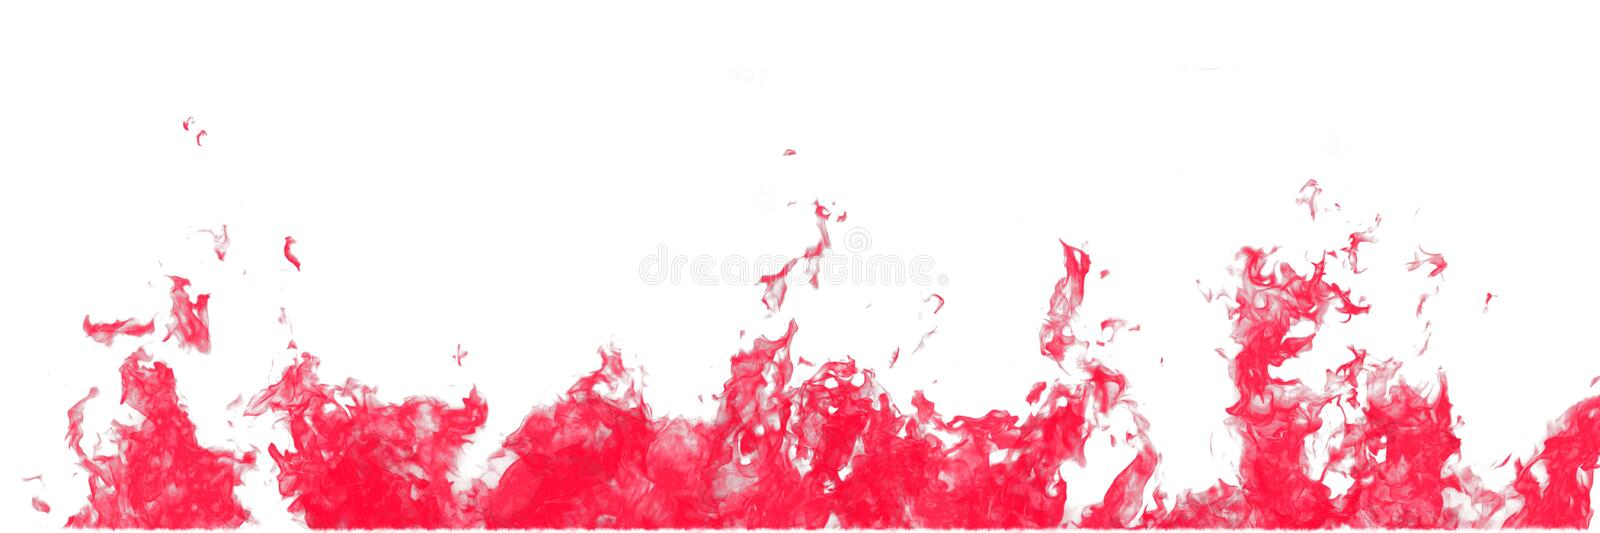 Real red line of fire flames isolated on white background. Mockup on white of wall of fire royalty free stock photos